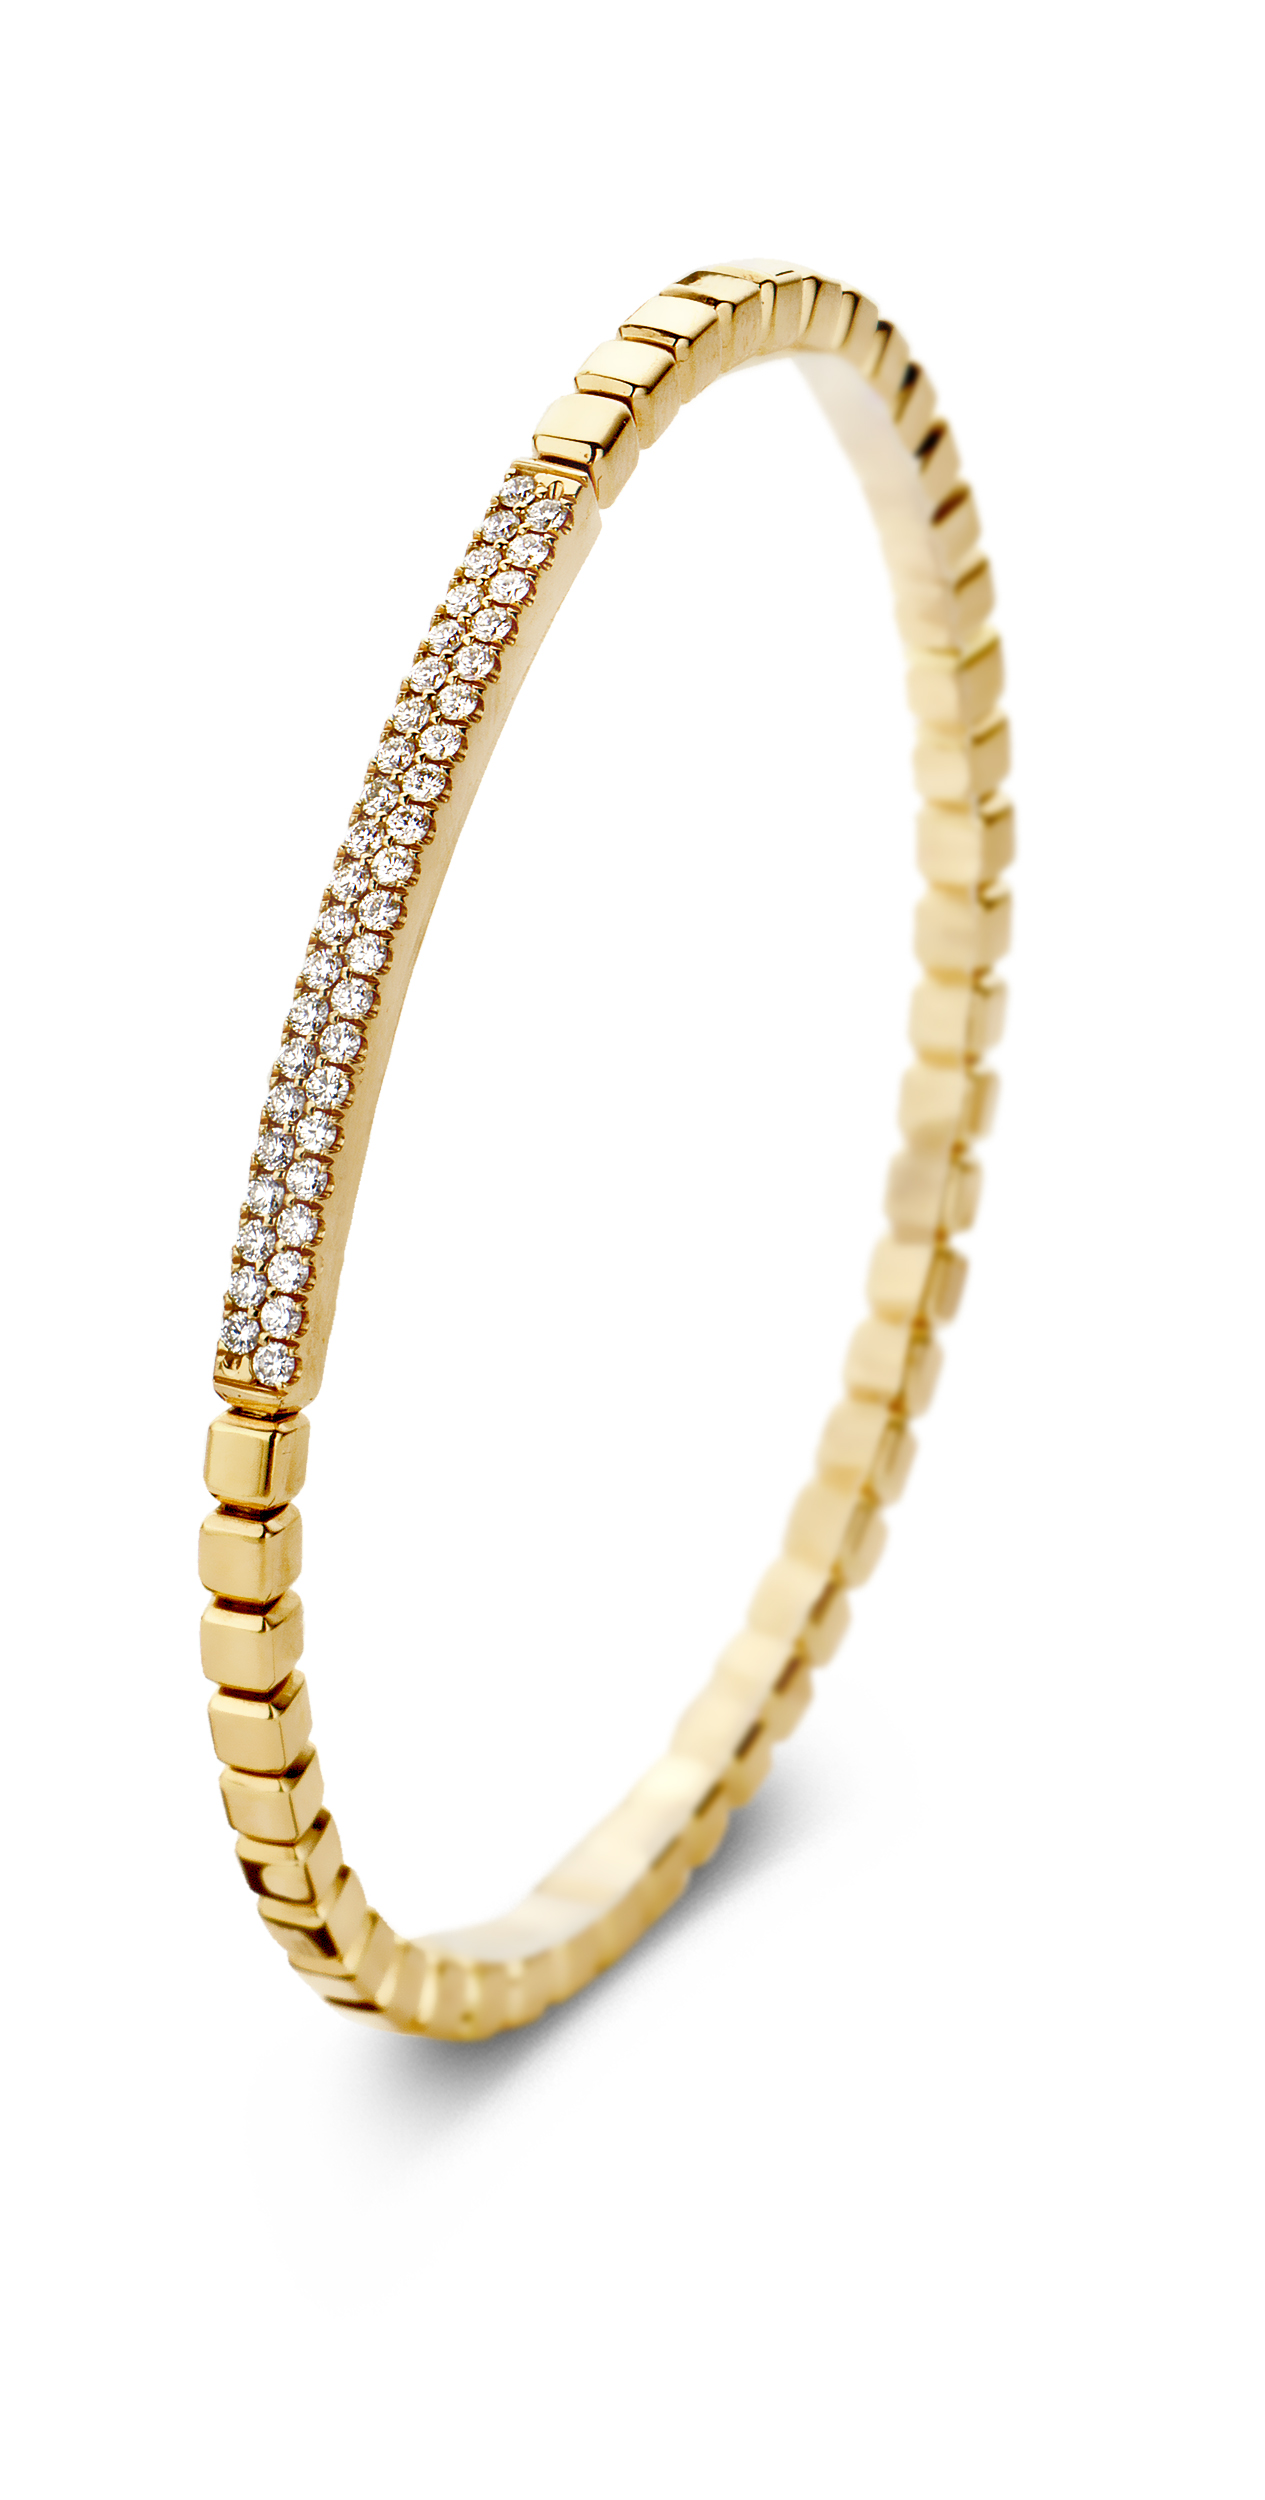 18ct Yellow Gold and Diamond Bracelet